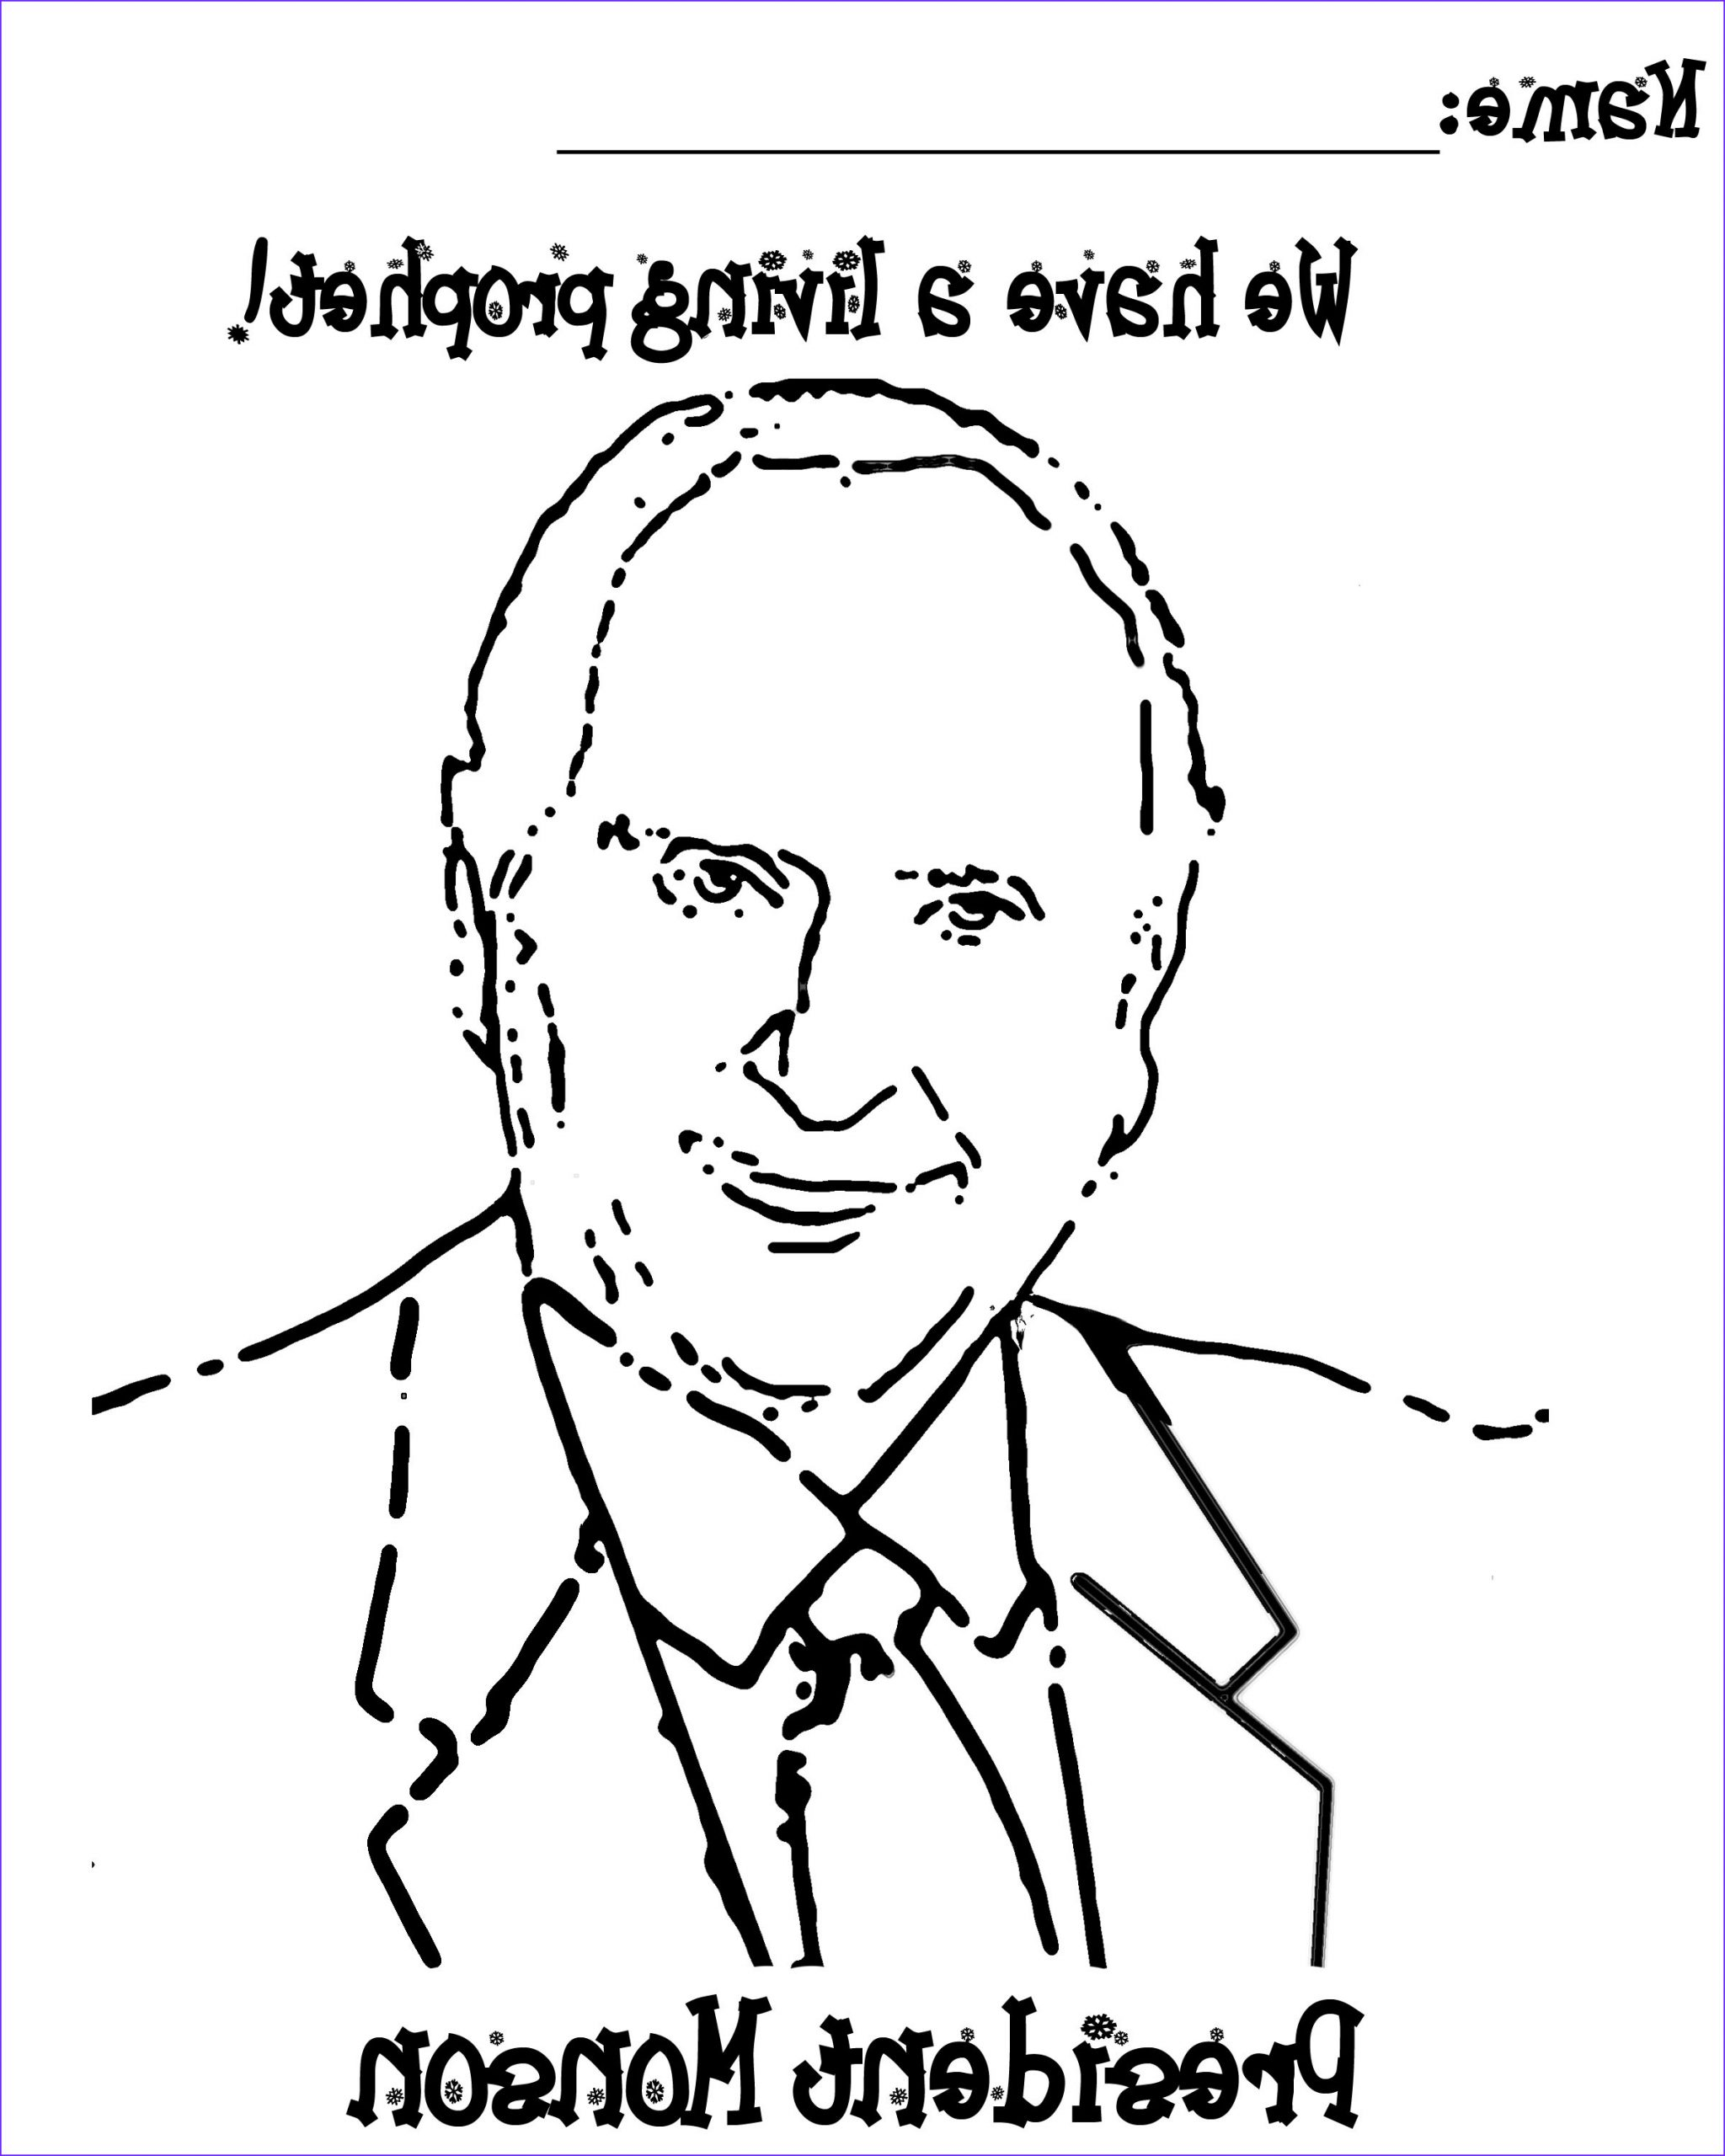 Thomas S Monson Coloring Page Luxury Photography President Monson General Conference Coloring Page Coloring